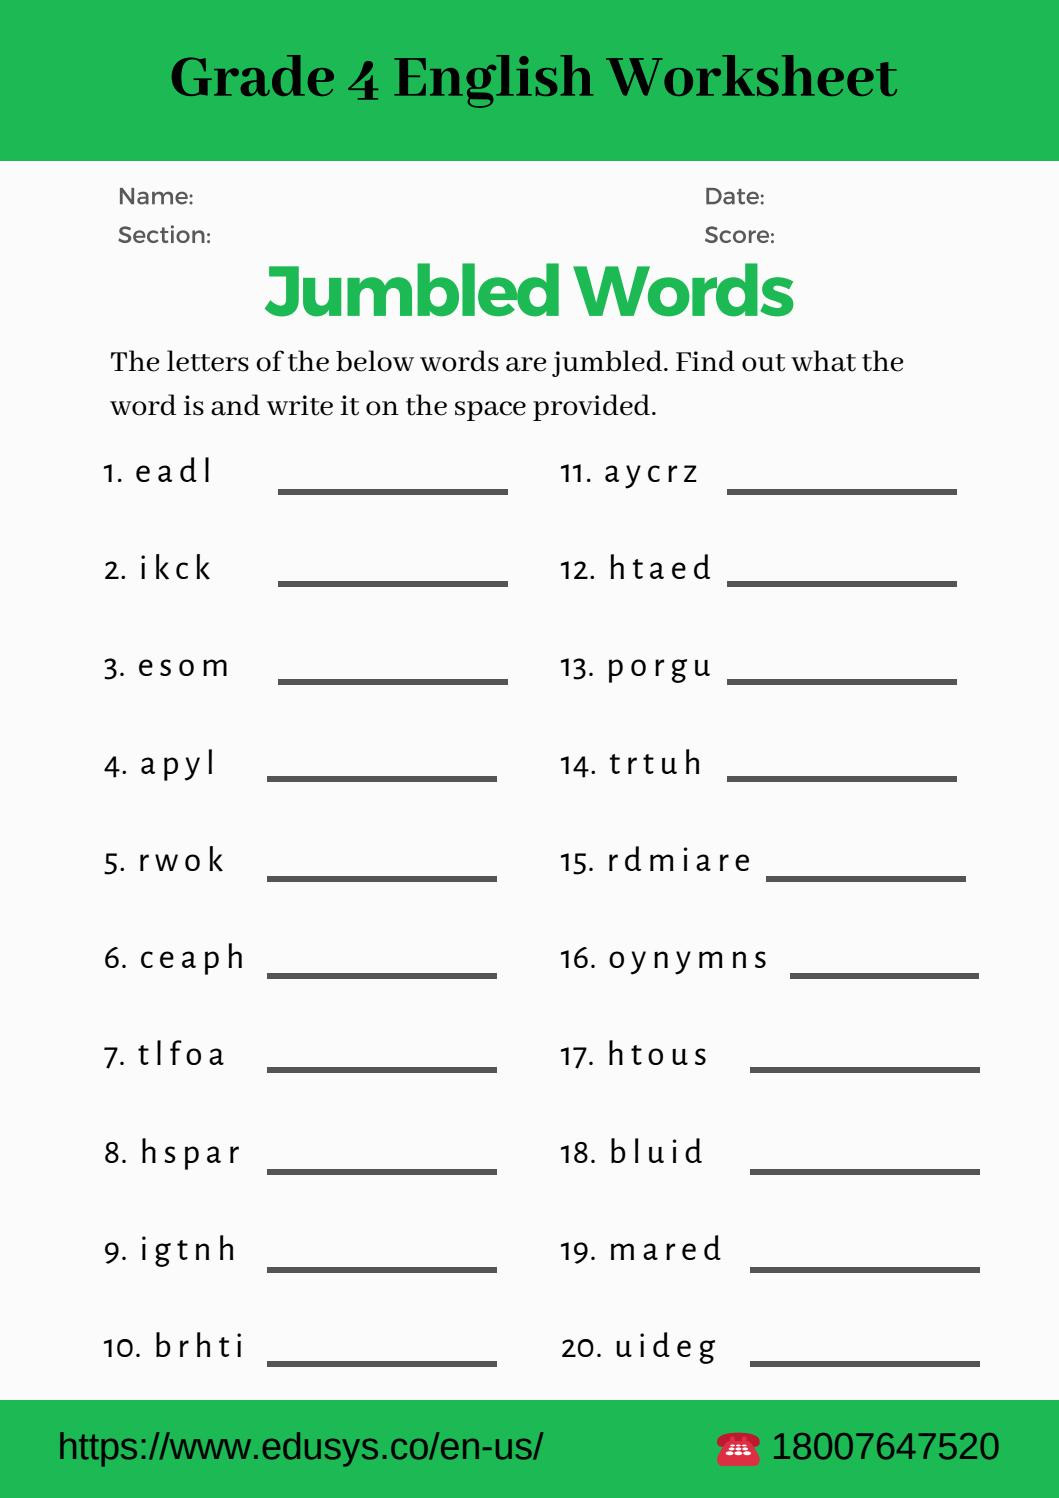 Capacity Worksheets 4th Grade 4th Grade English Vocabulary Worksheet Pdf by Nithya issuu